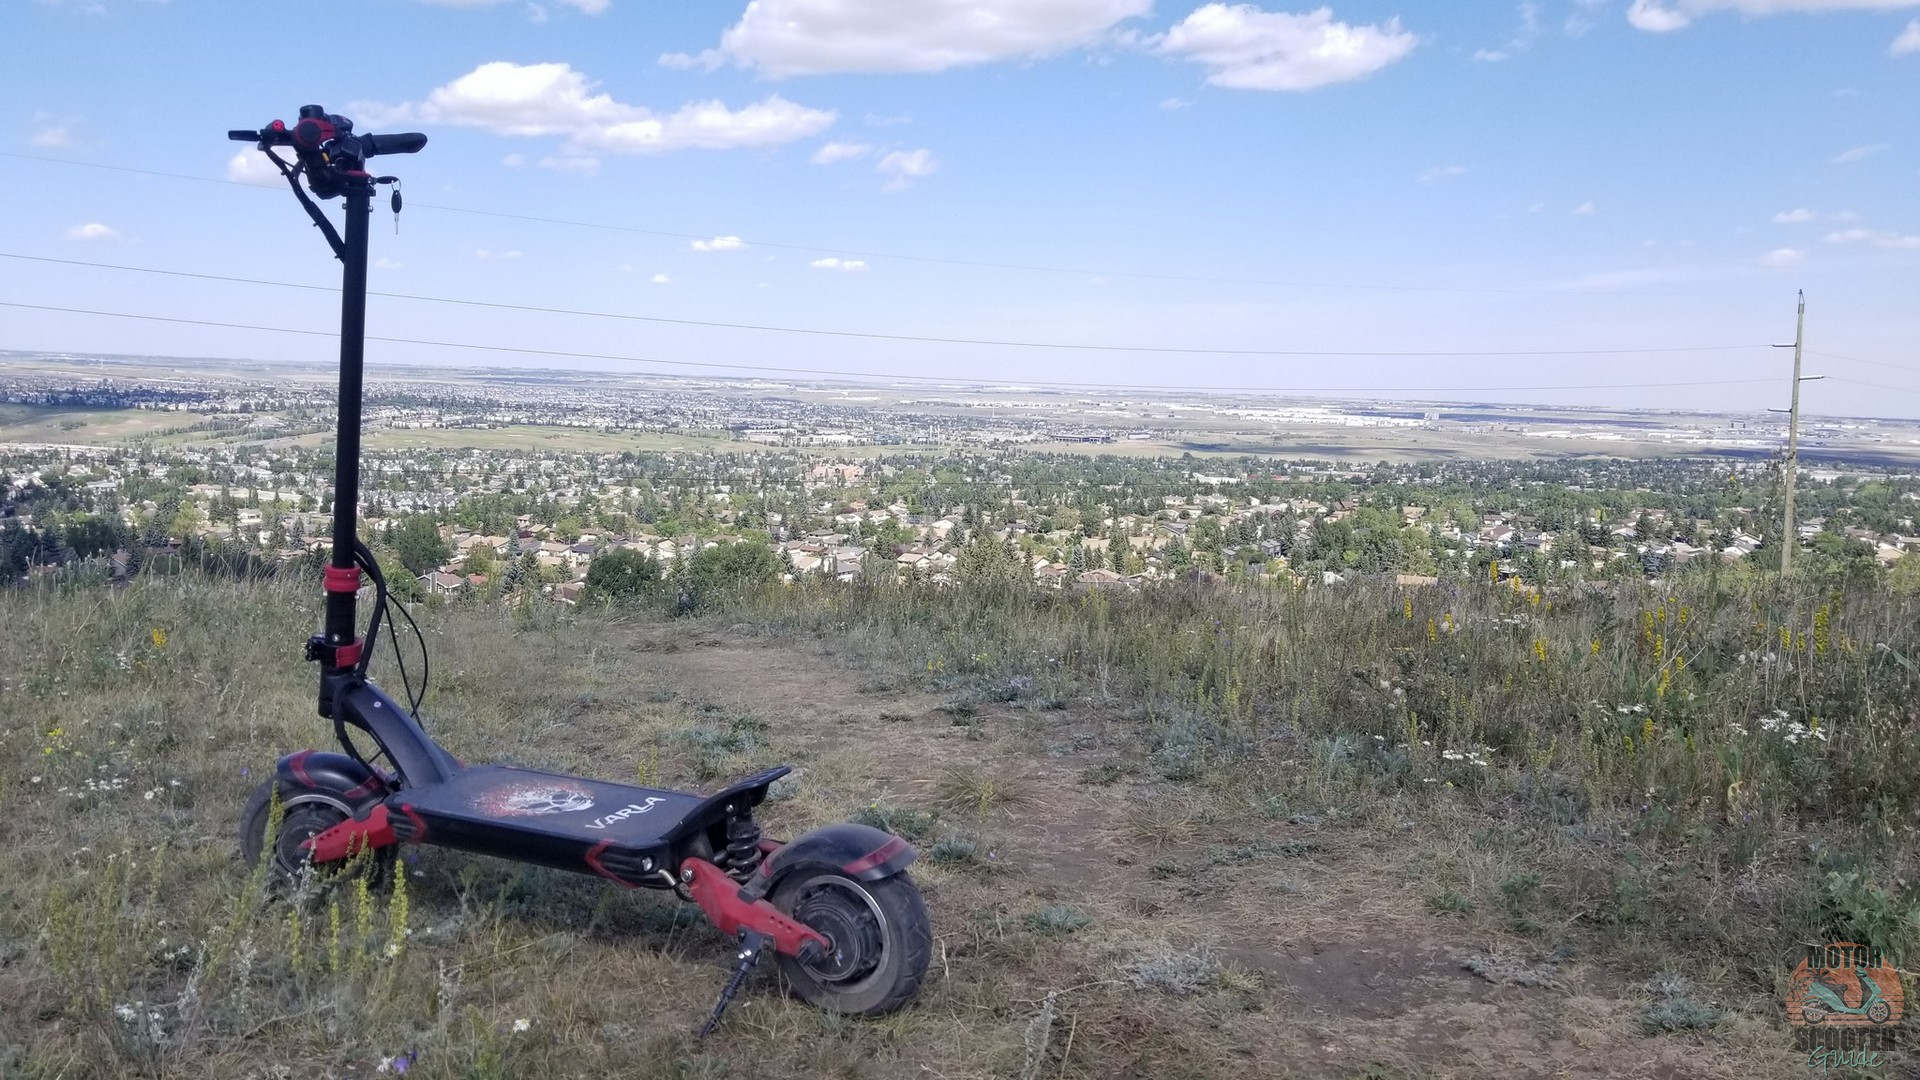 Eagle One scooter at the top of Nose Hill park overlooking the city